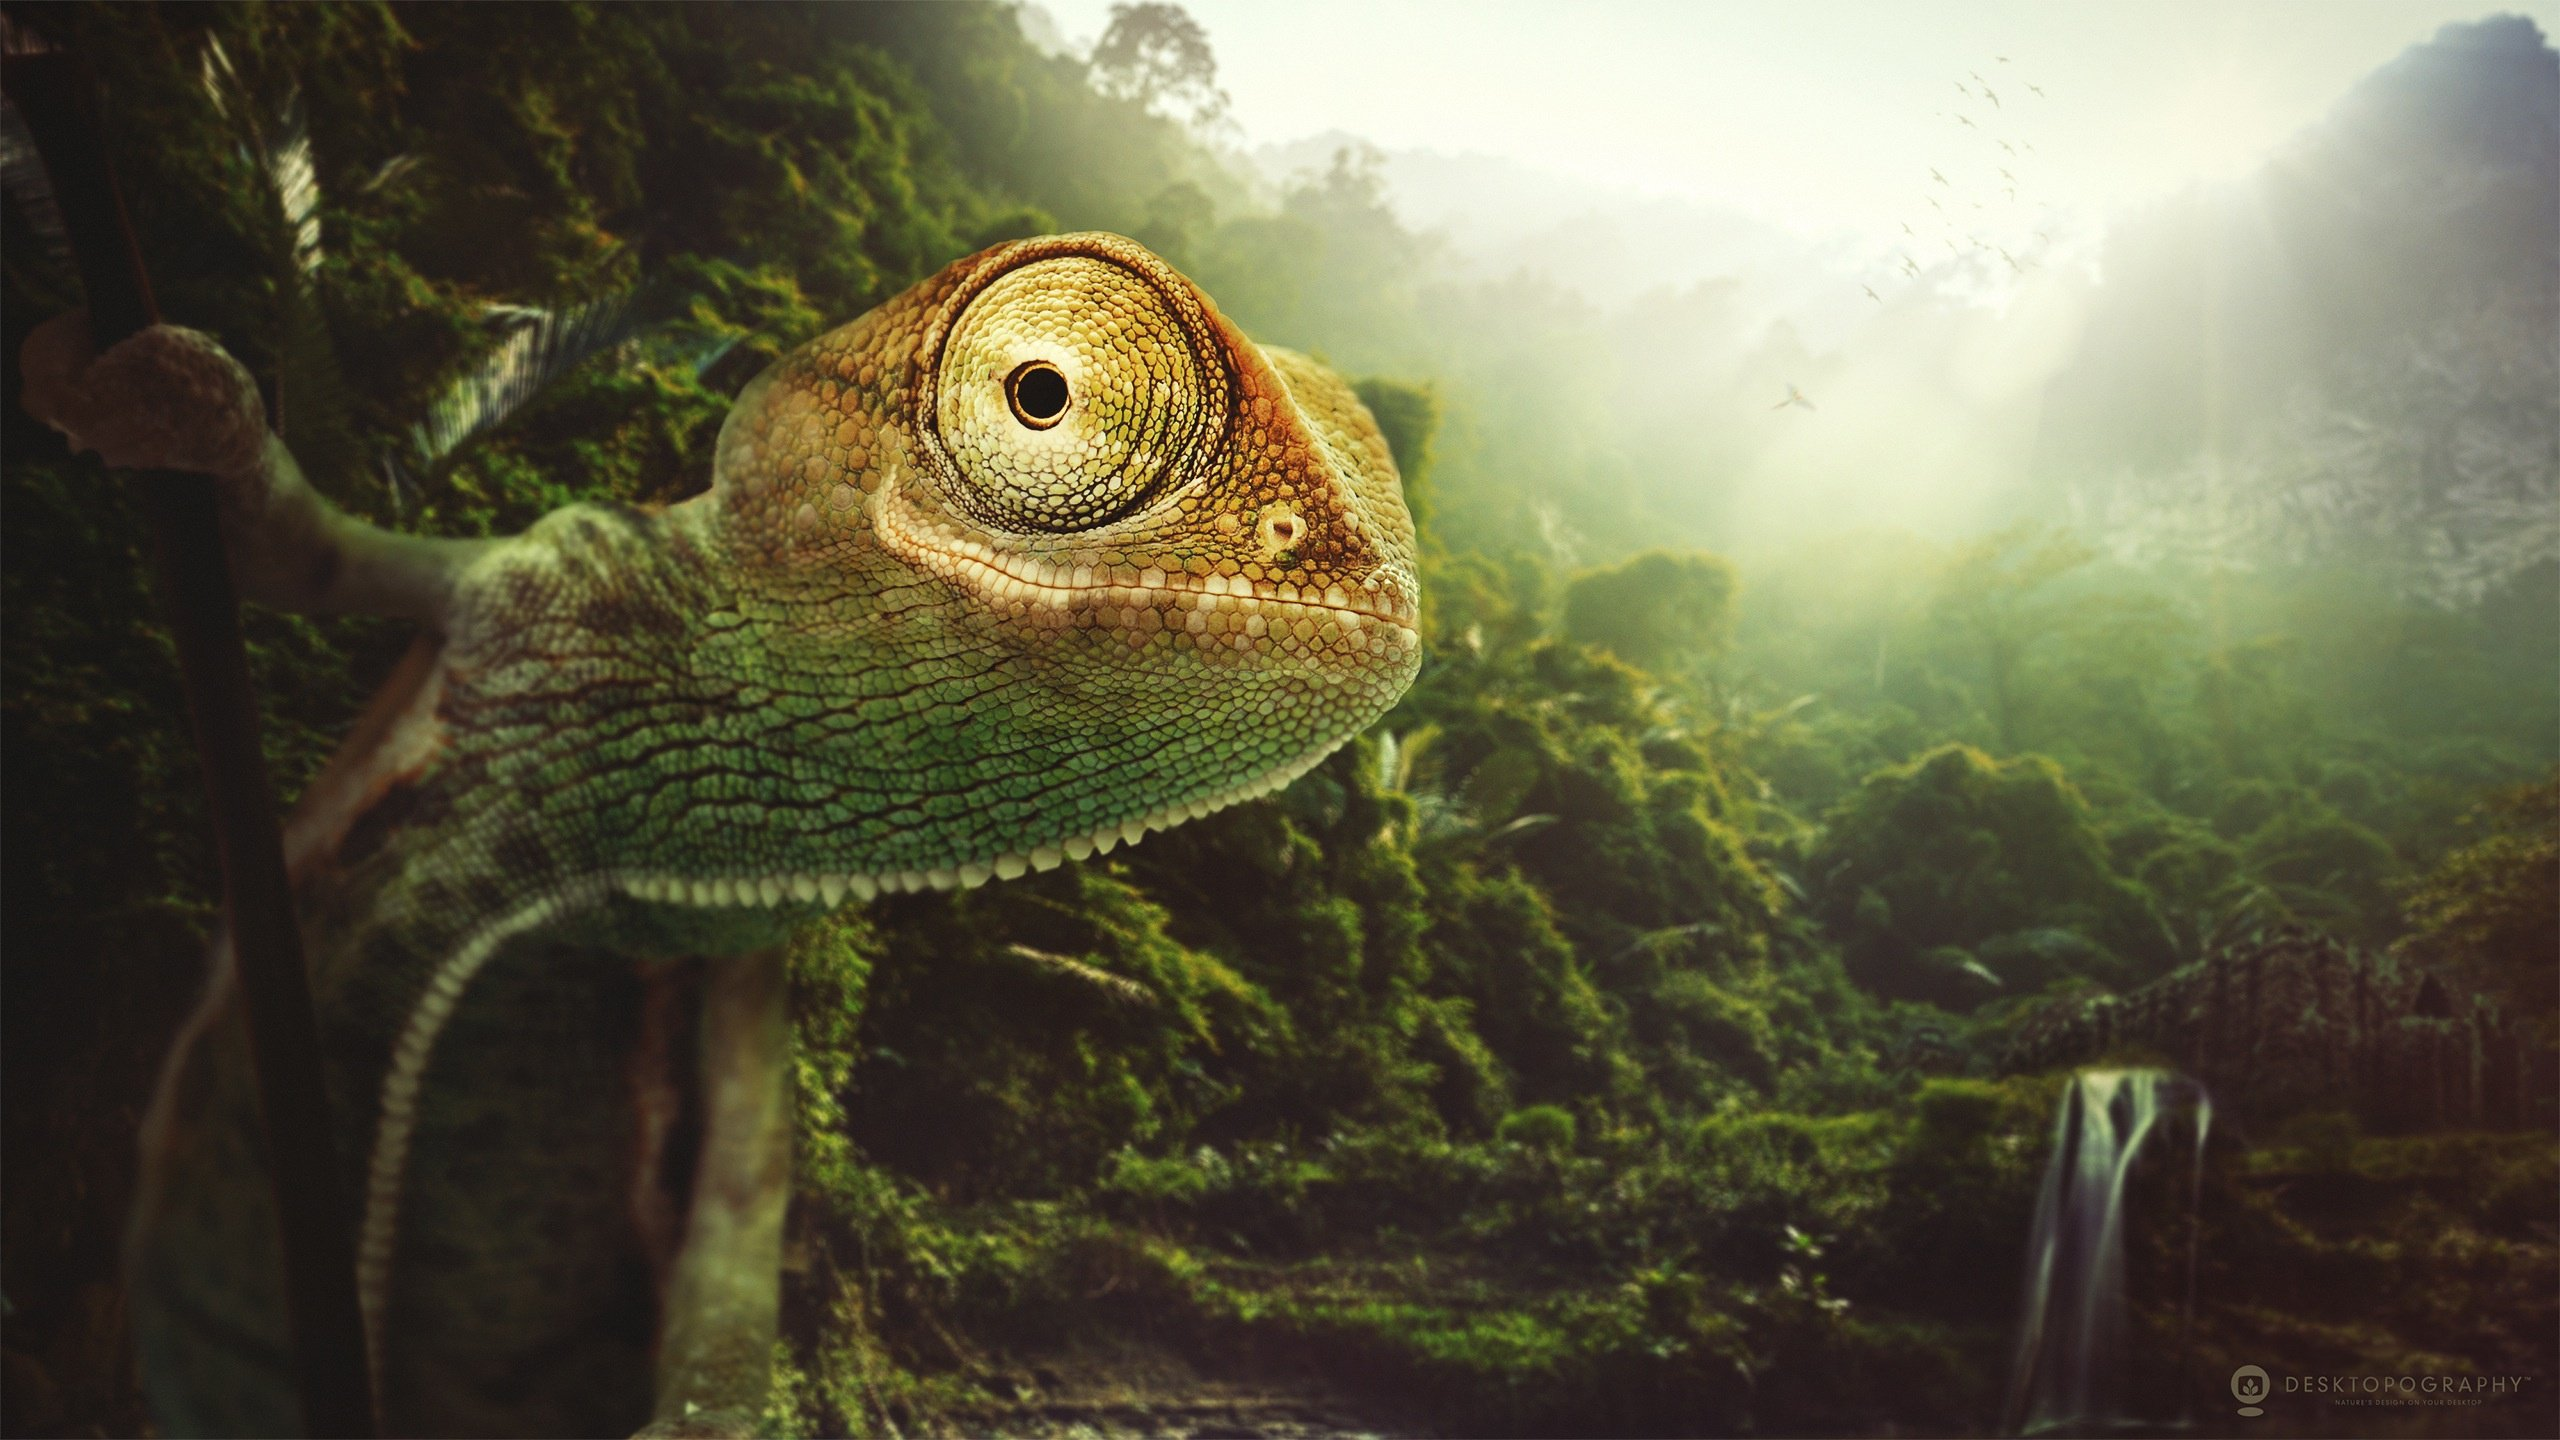 22 reptile hd wallpapers - photo #19